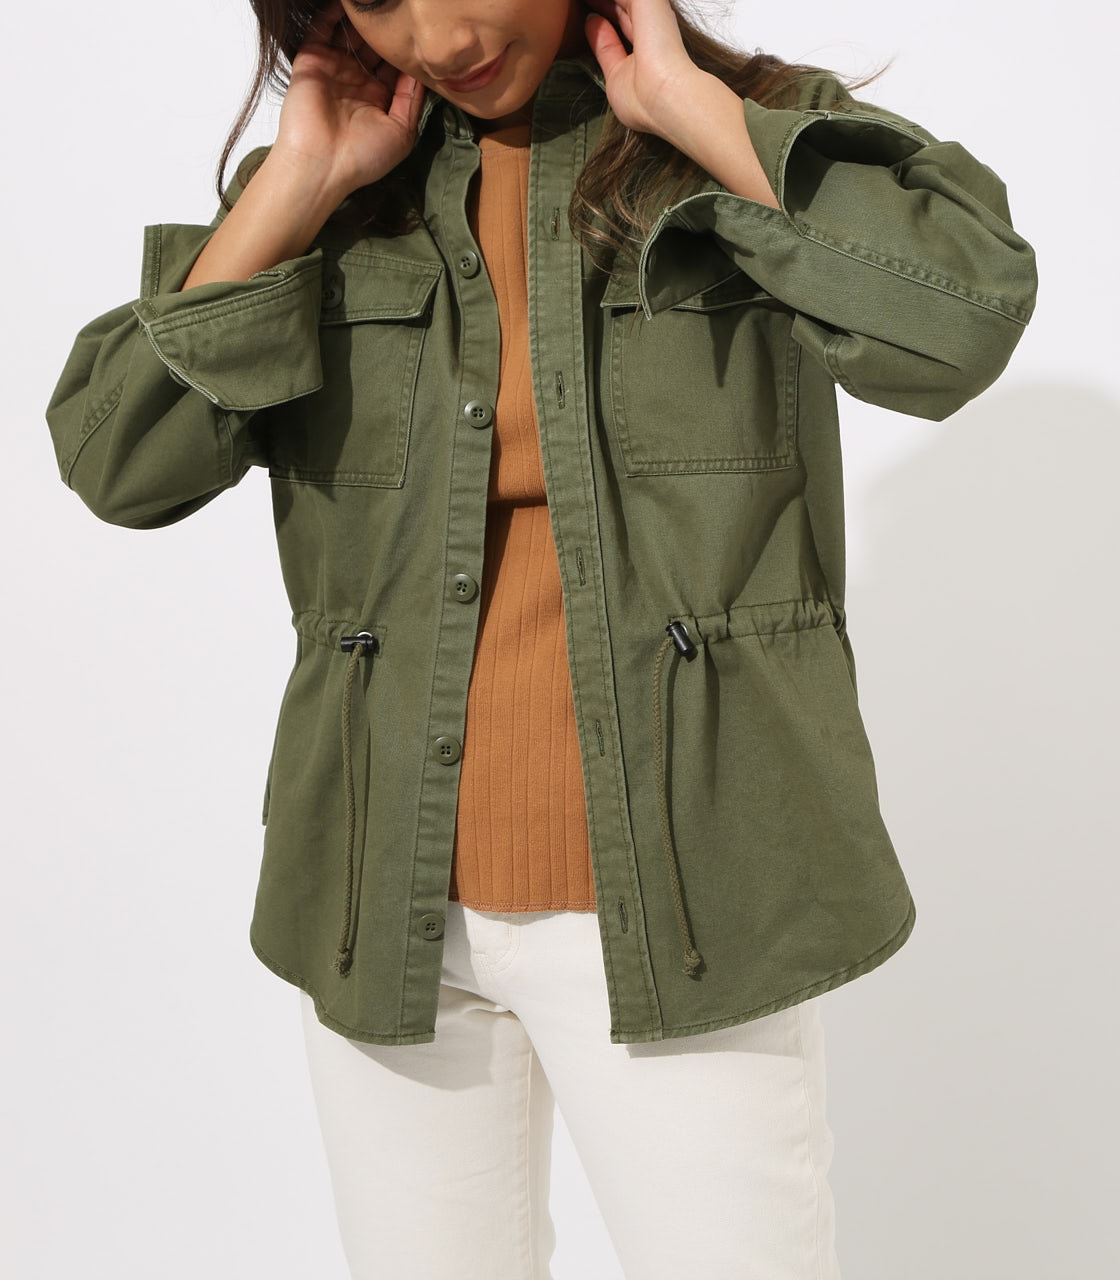 【AZUL BY MOUSSY】Military Blouson 詳細画像 L/KHA 3